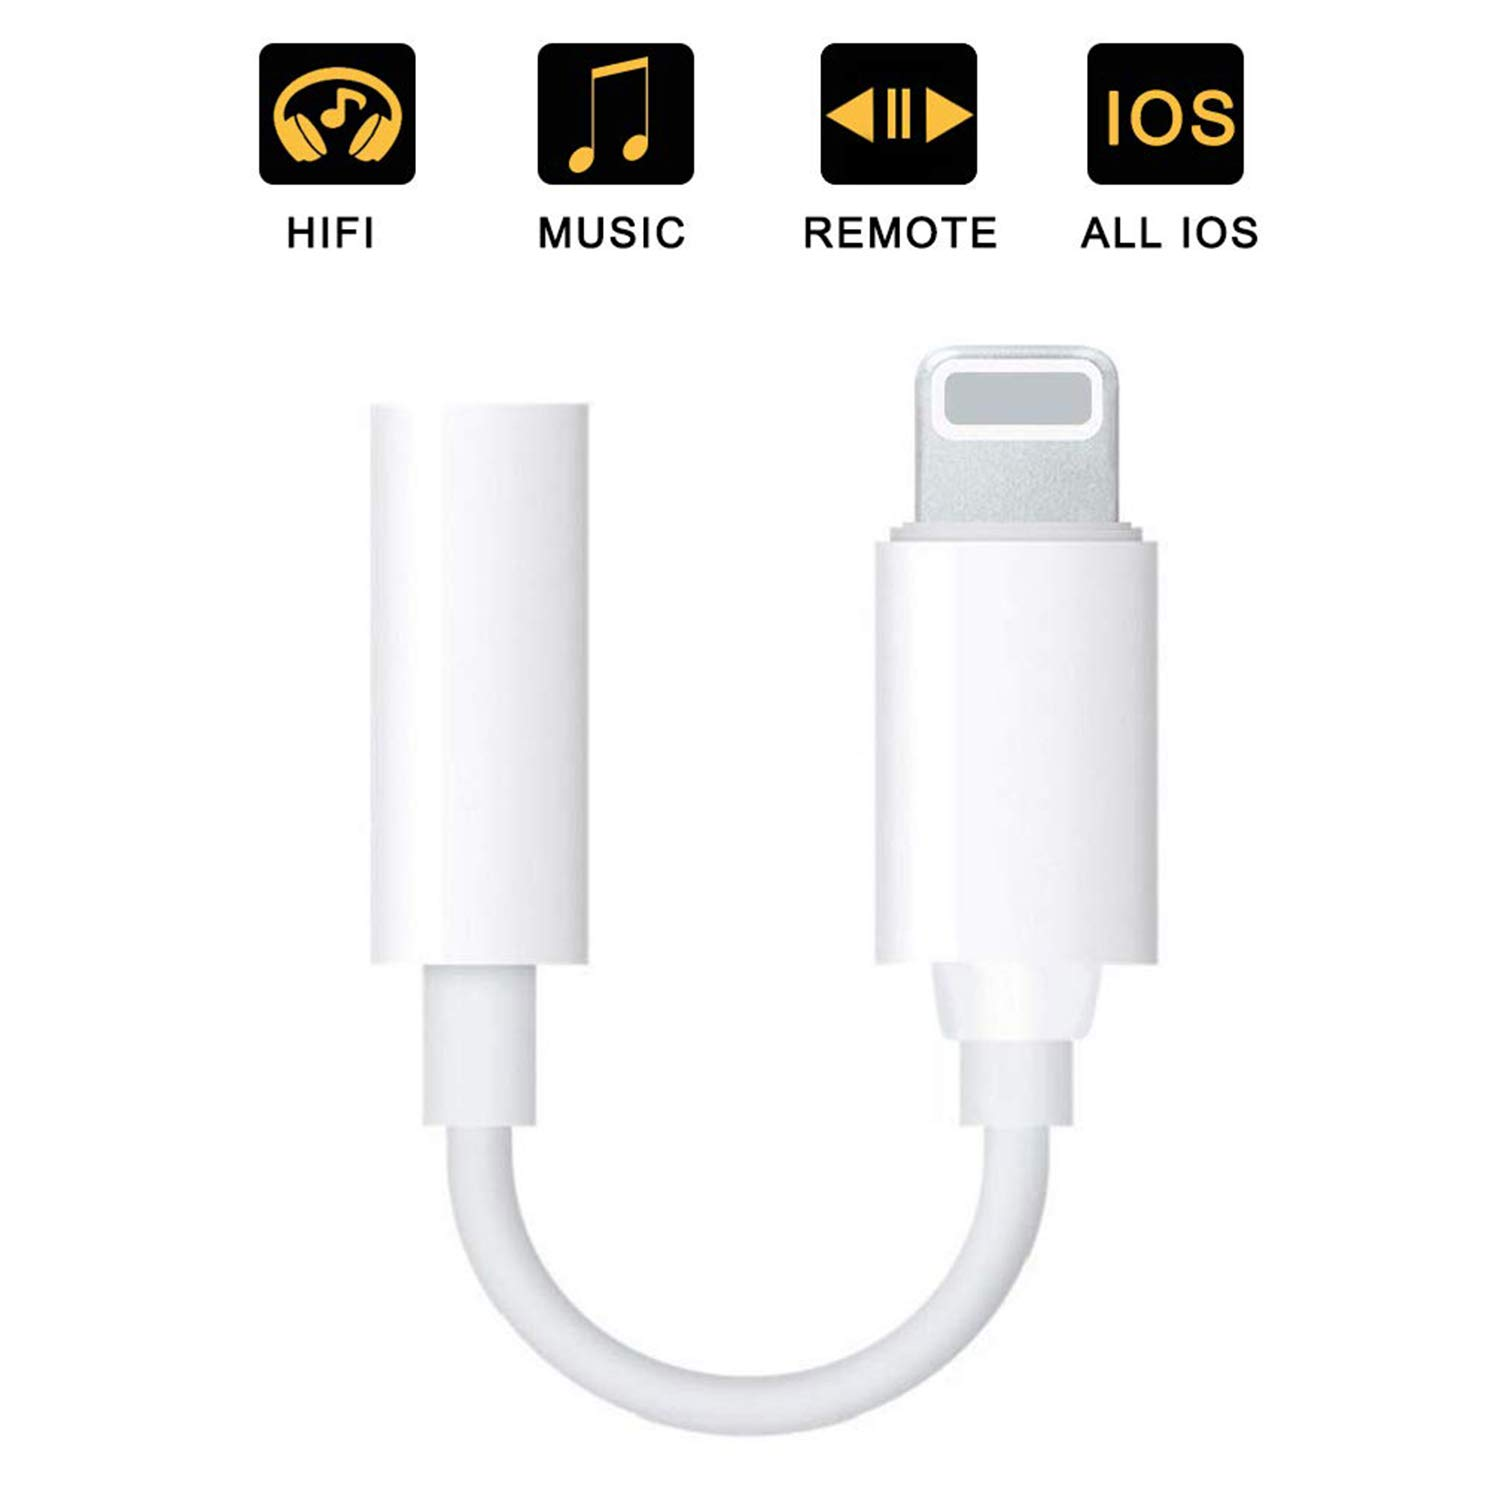 590a3c9bedd4 Headphone Jack Adapter 3.5mm AUX Audio for iPhone 7 /7Plus iPhone 8 /8Plus